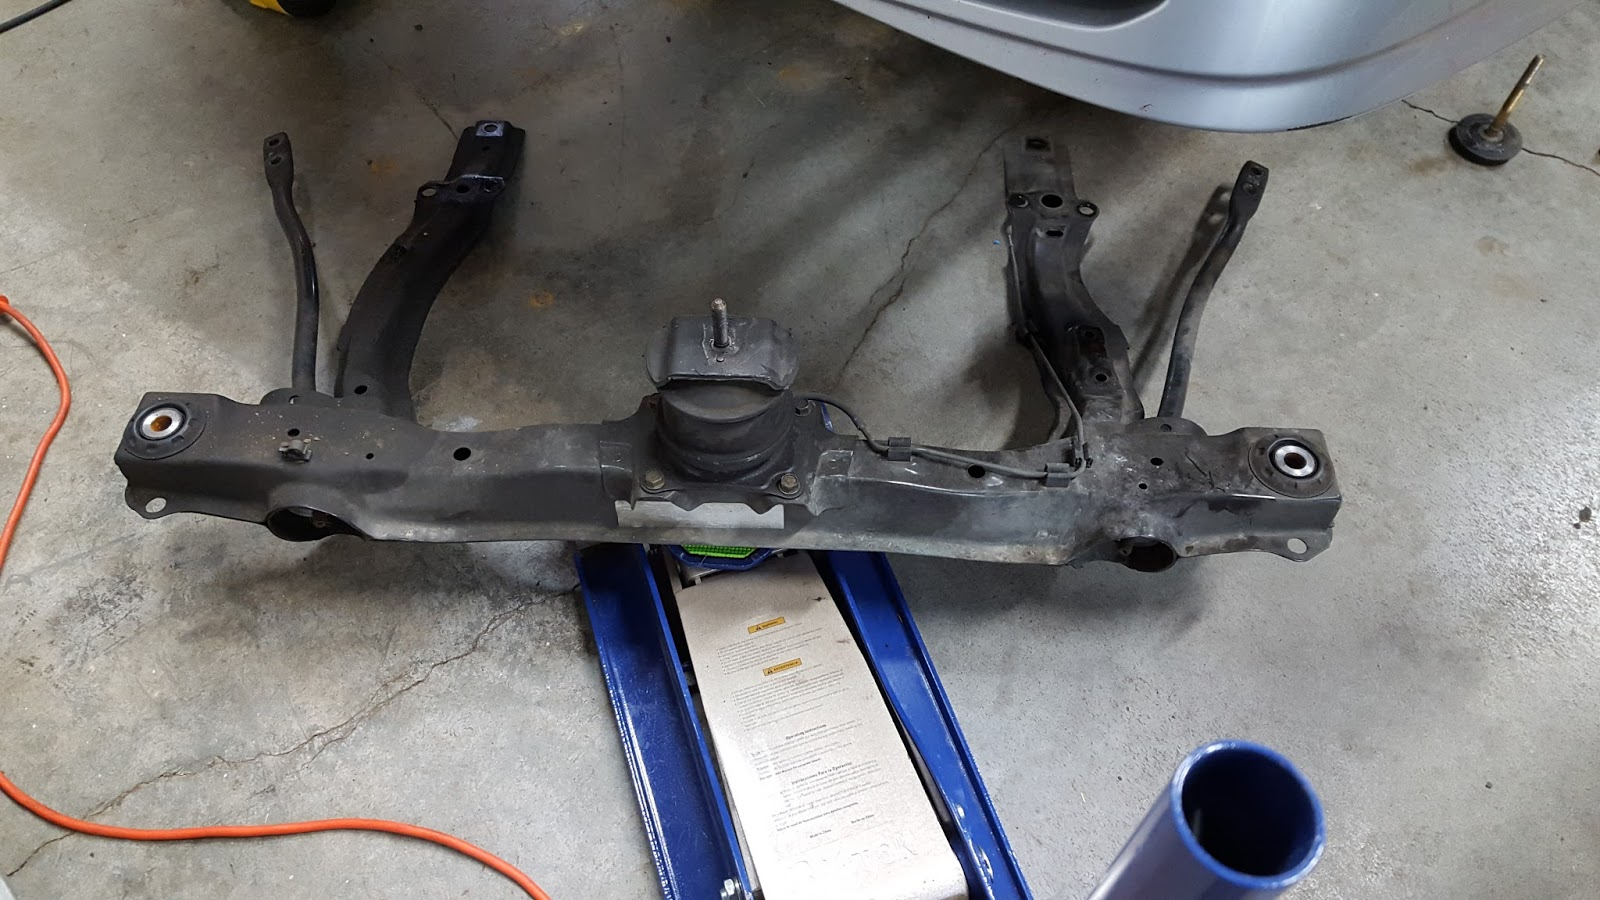 Havener Garage The Definitive 2nd Gen Acura Tl Av6 Transmission 2001 Honda Accord Install Front Subframe Unbolts And Drops Out This Is A Good Time To Replace Engine Mount If Needed